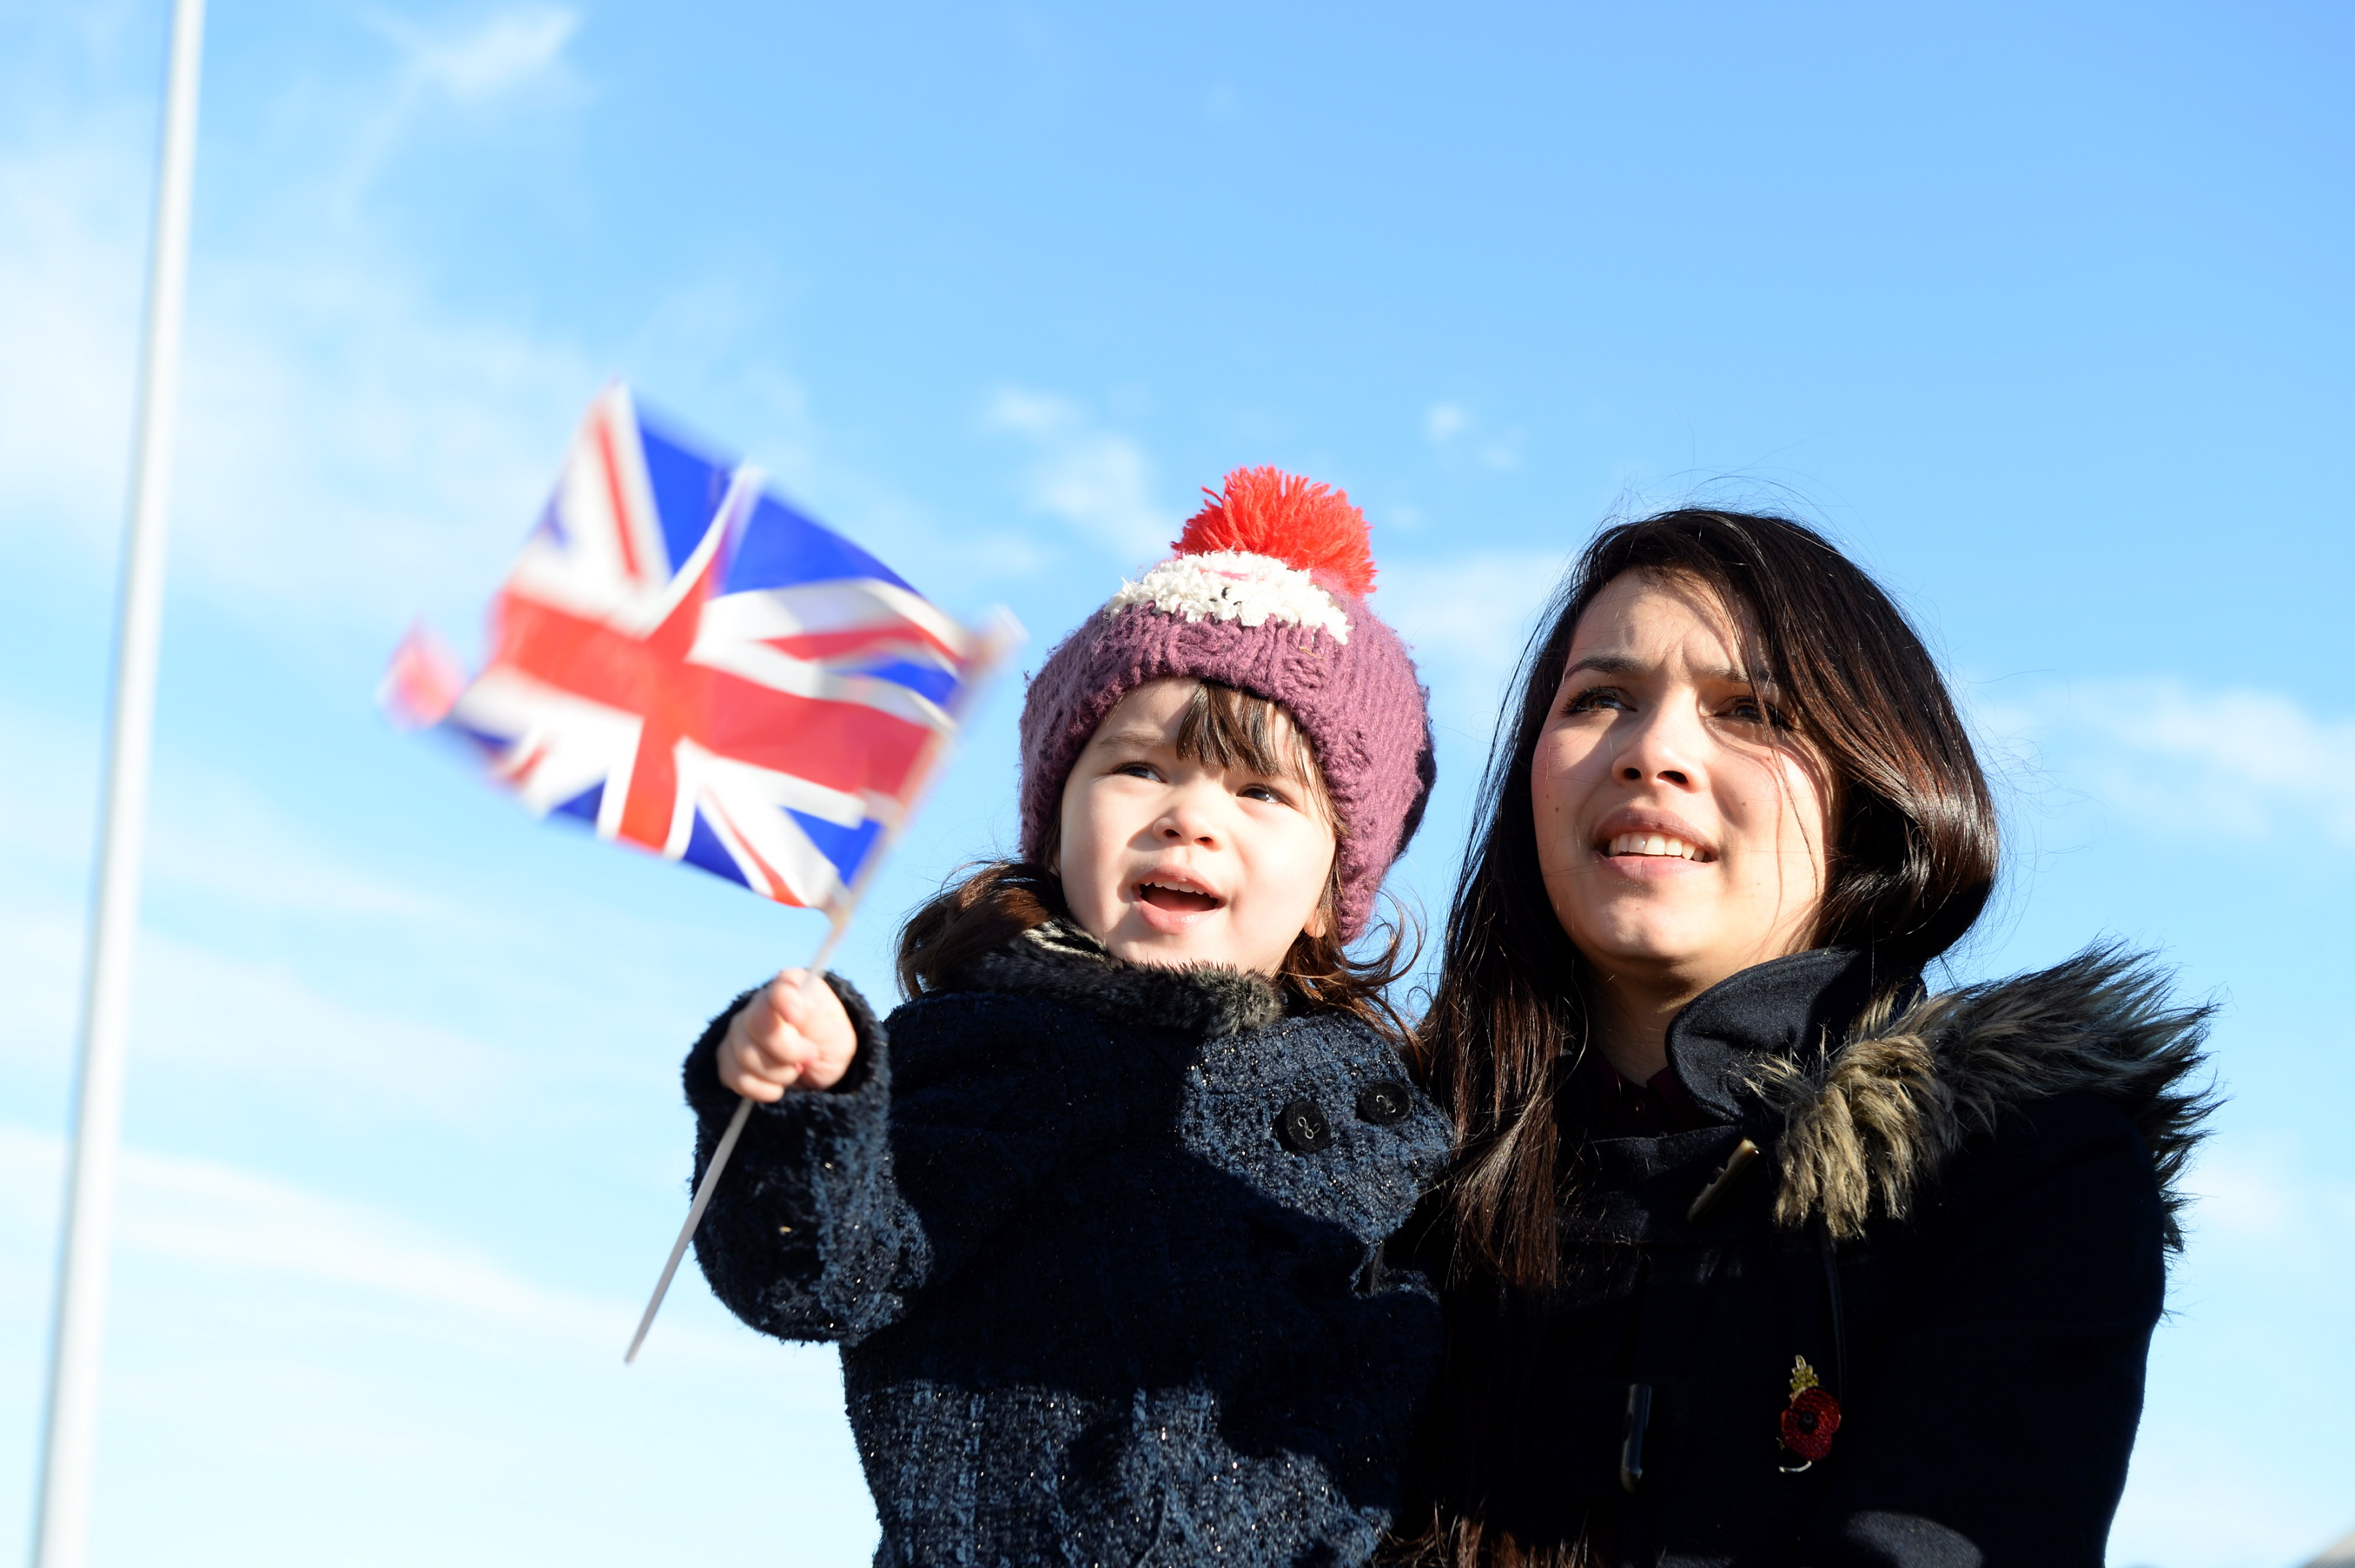 Mother and daughter waiting for ship to return, daughter waving a flag.